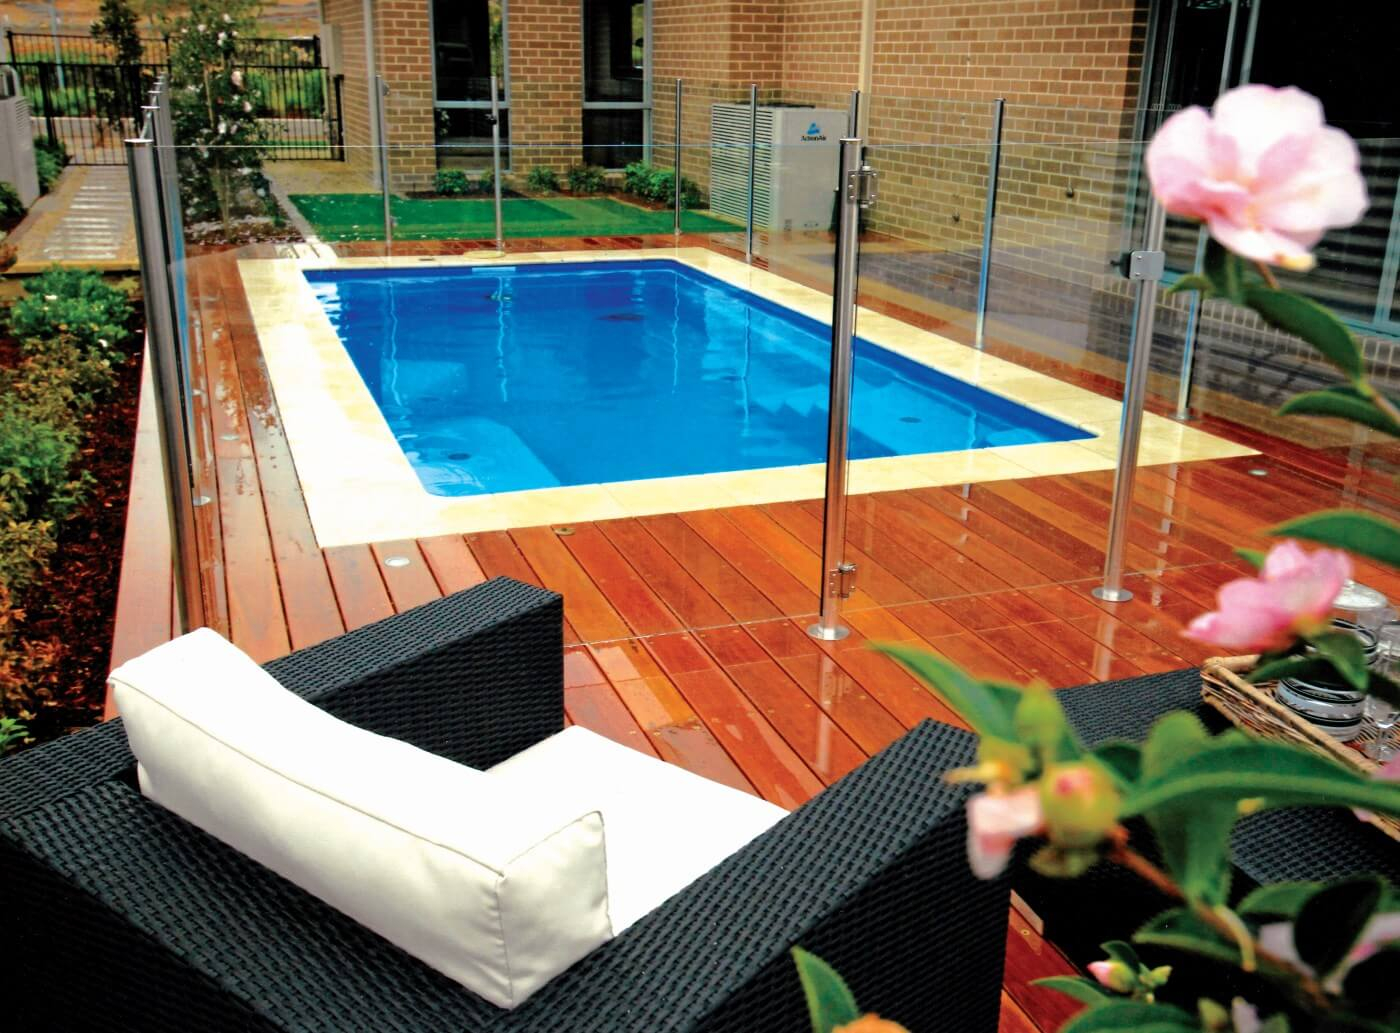 The Best Pool Design Ideas For Your Backyard Compass Pools Australia within 10 Awesome Ideas How to Make Small Backyard Pool Ideas